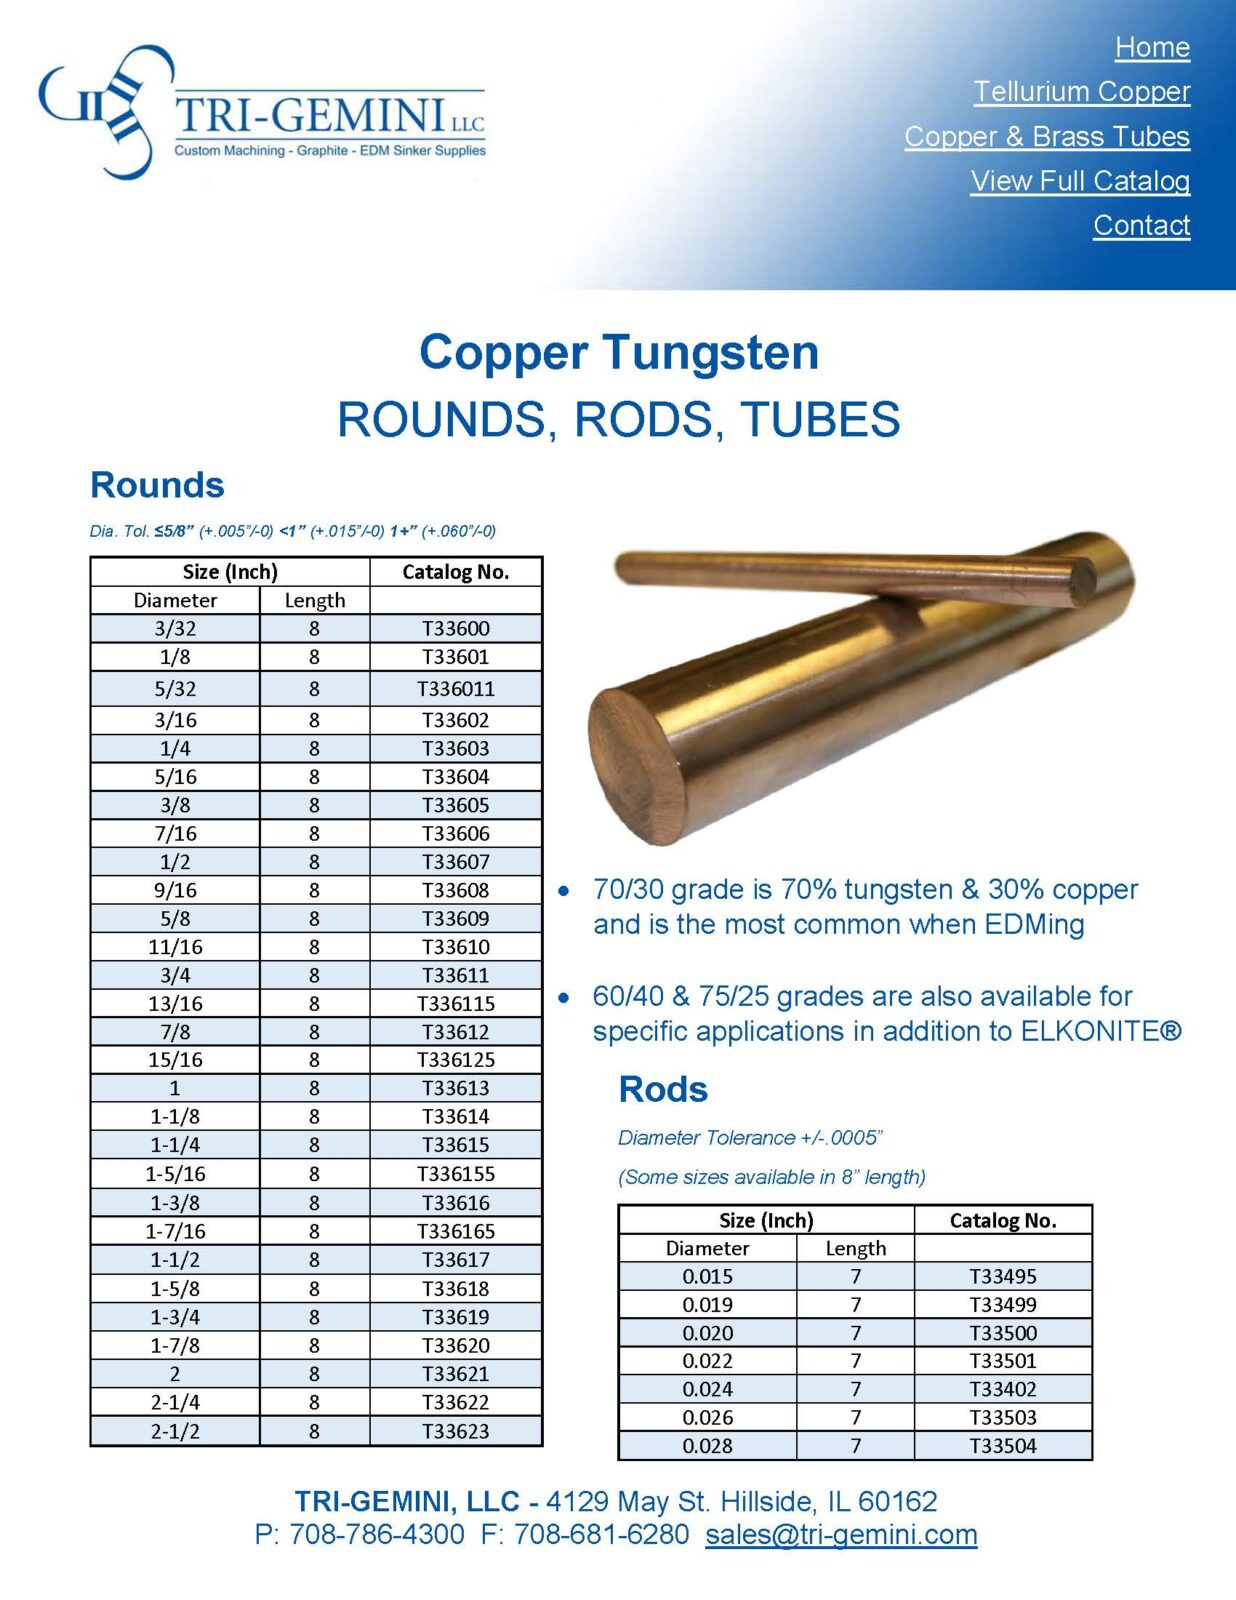 Copper Tungsten Rounds-Rods-Tubes